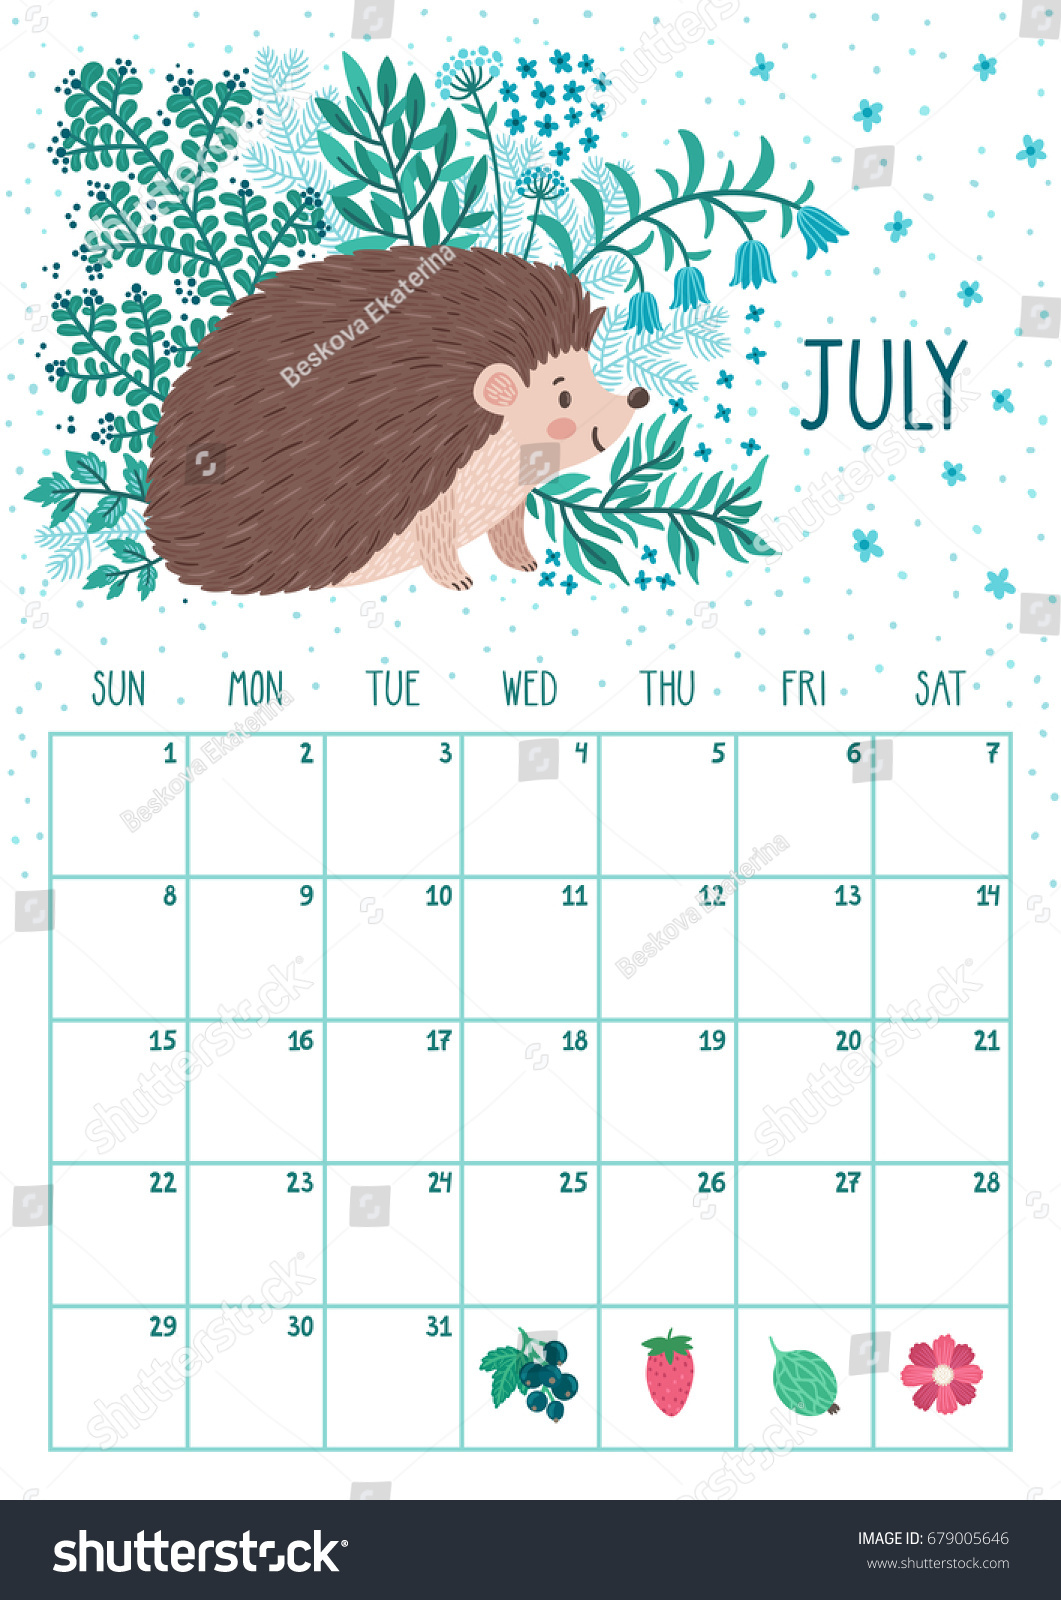 Vector Monthly Calendar Cute Hedgehog July Stock Vector